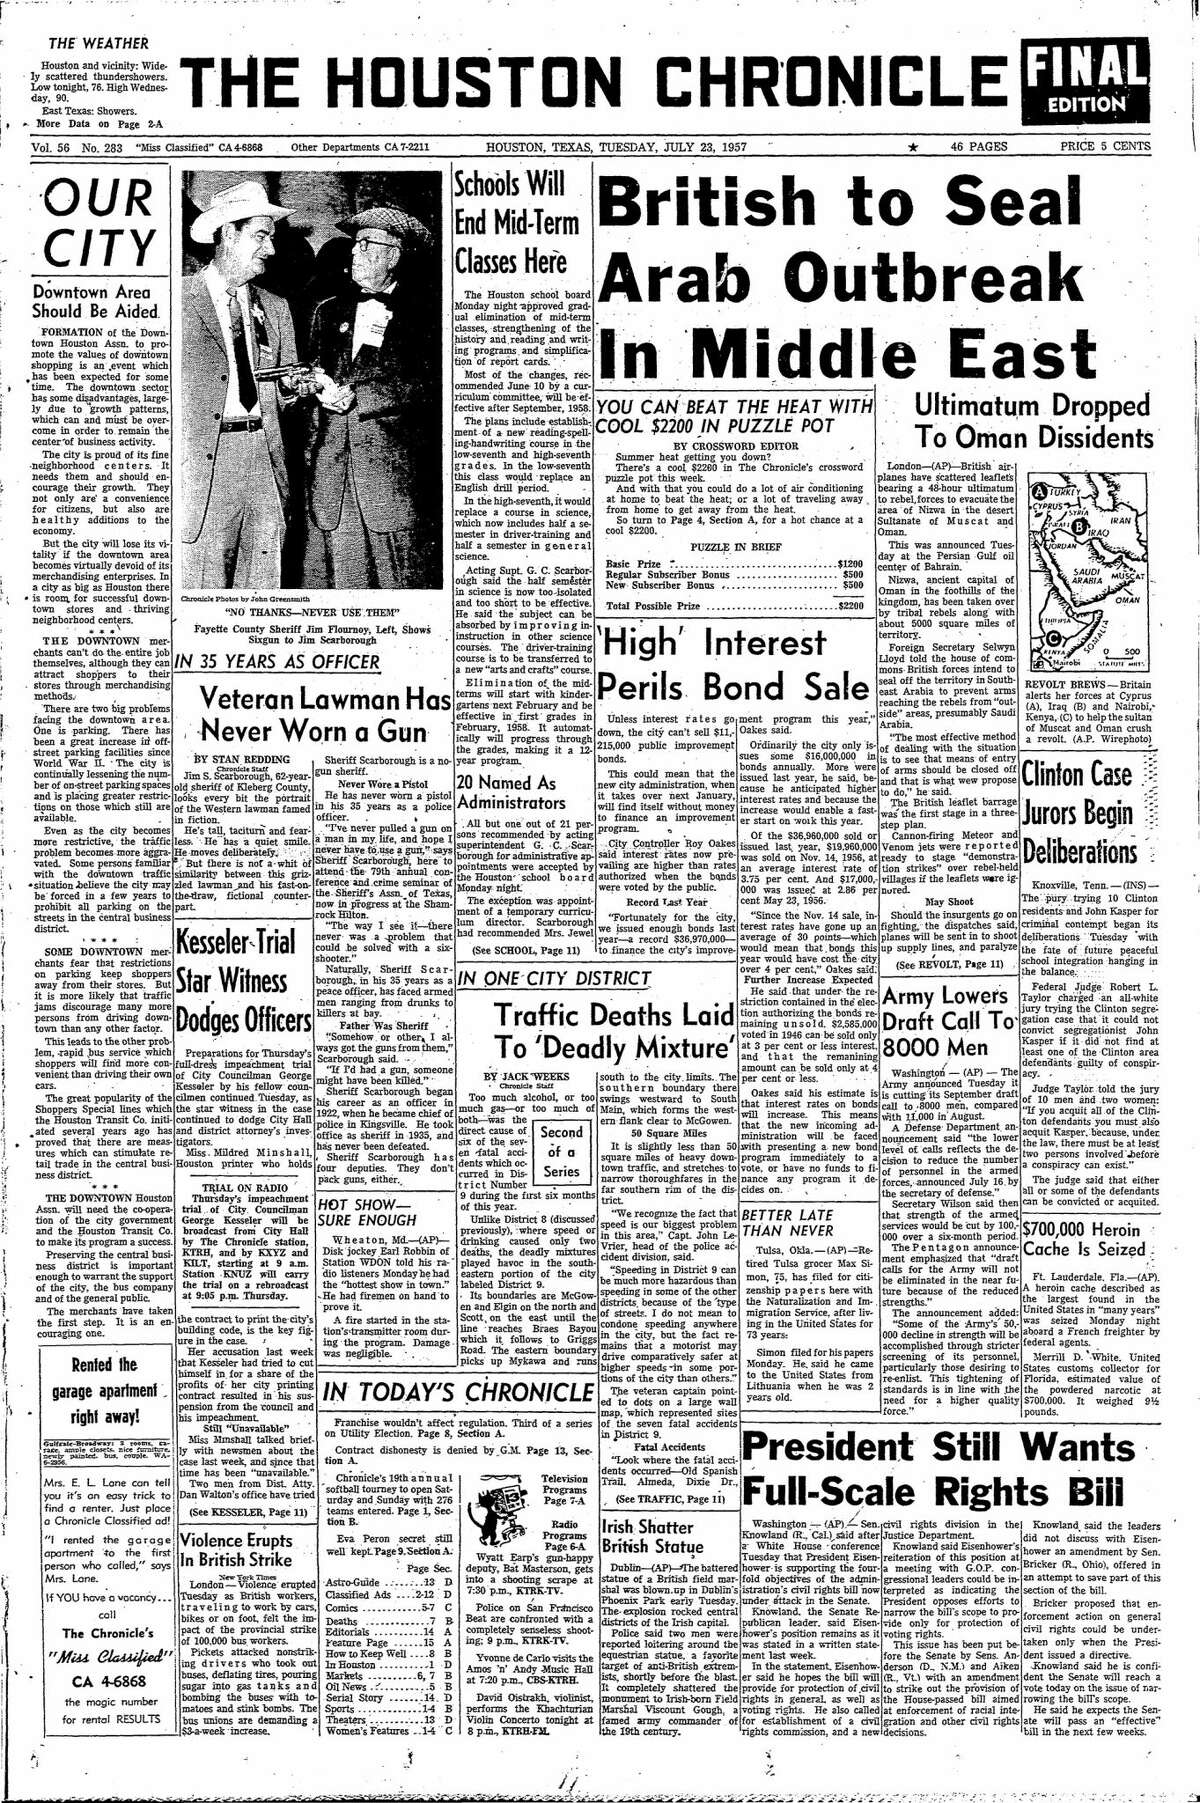 Houston Chronicle front page for July 23, 1957.